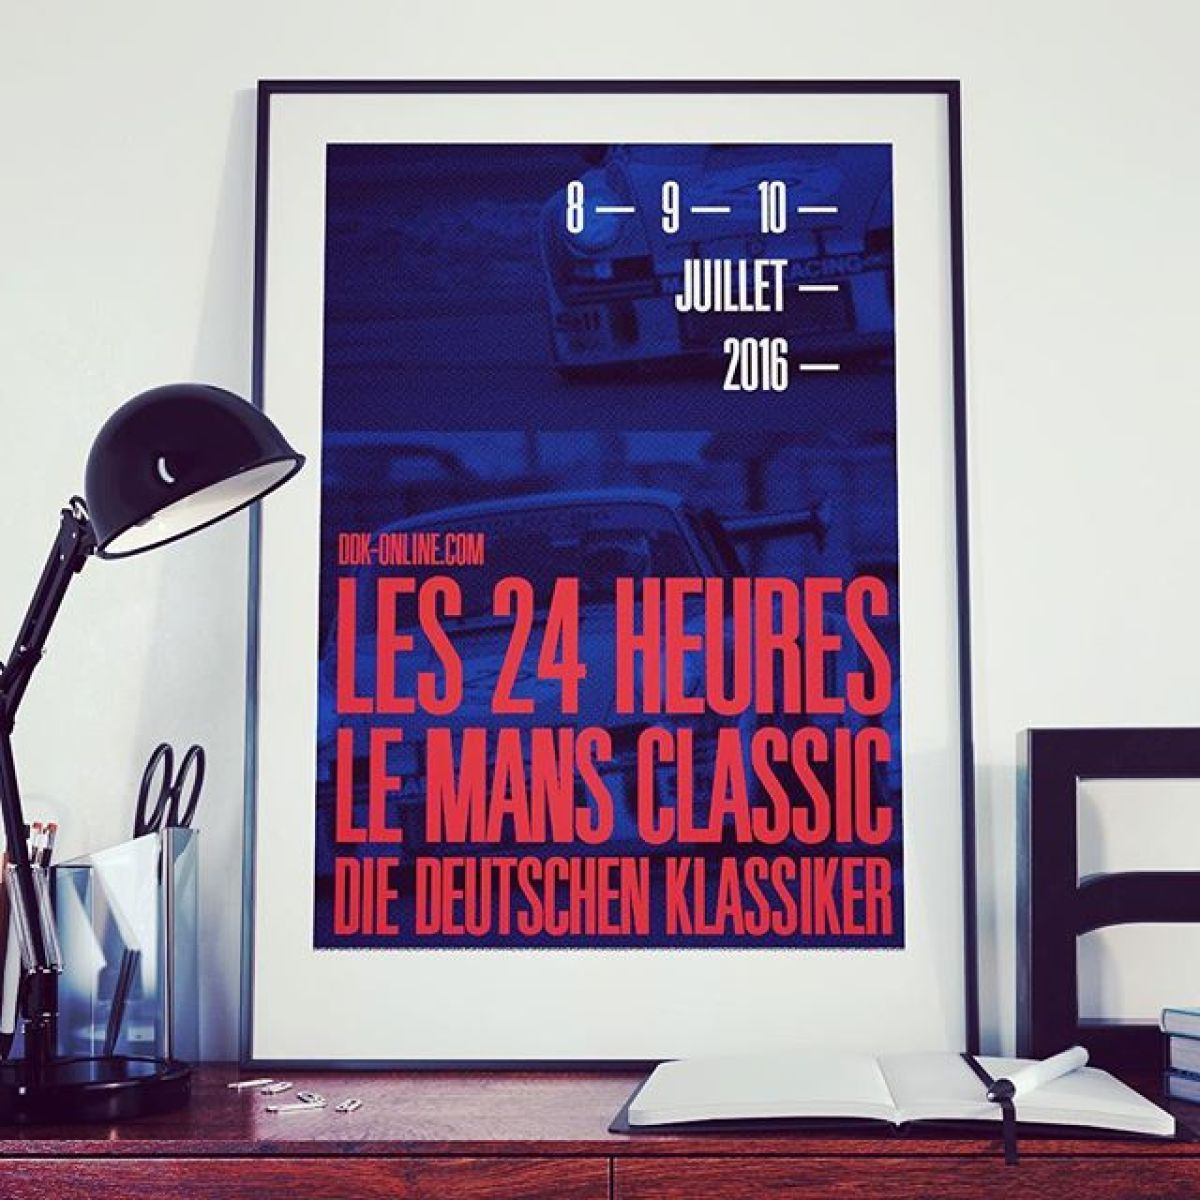 DDK Porsche club — #lemansclassic #lemans #poster #porsche #design #graphic #graphicdesign #art